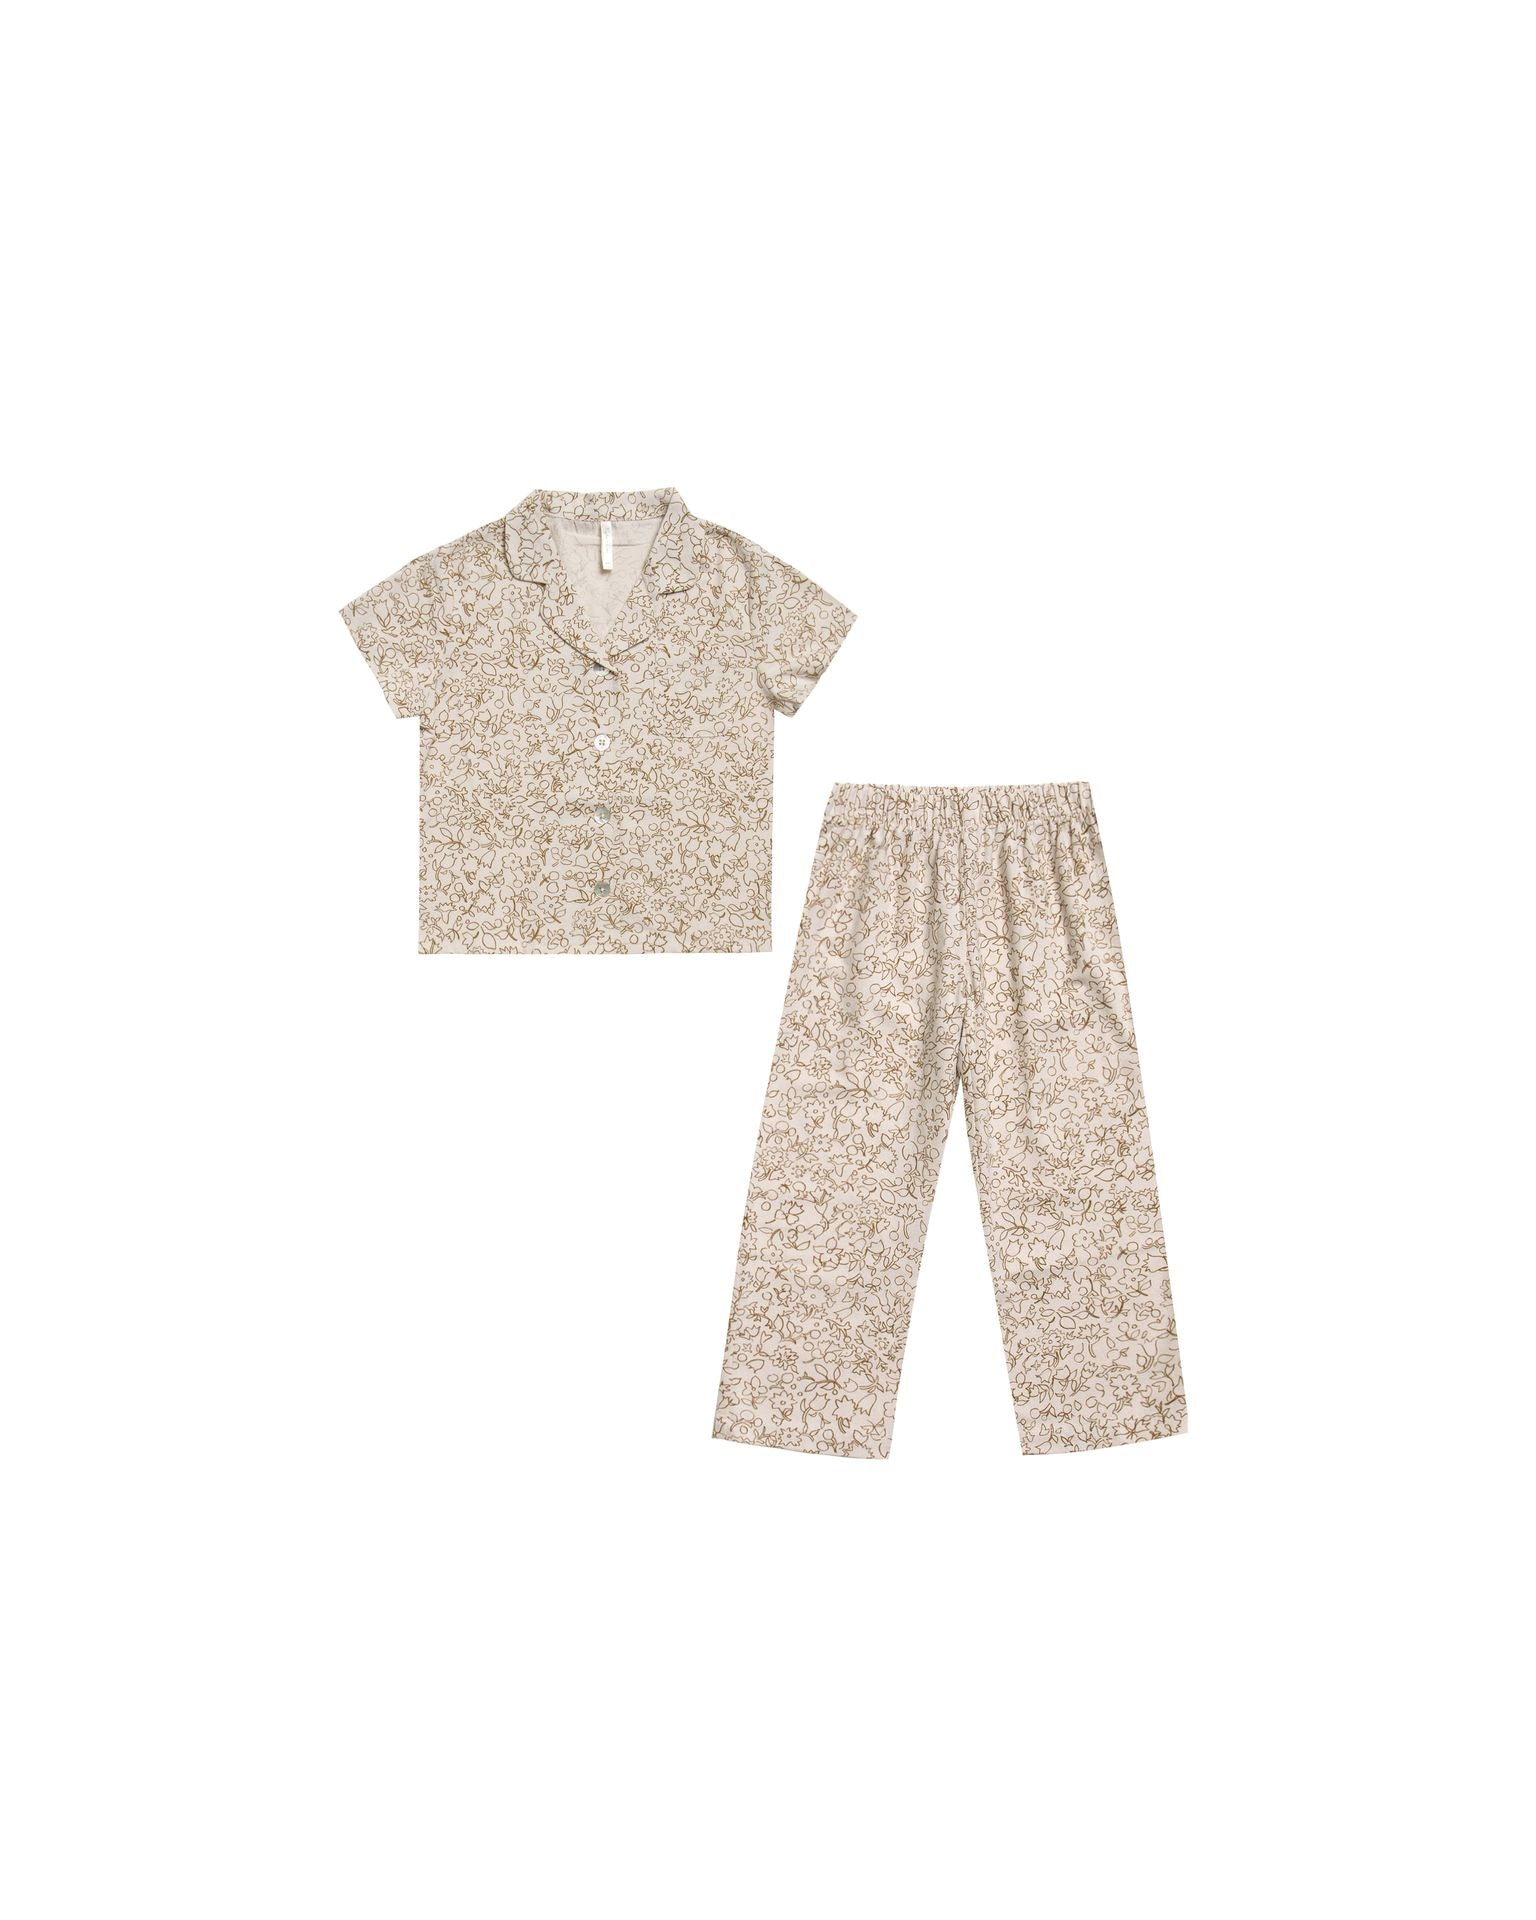 Rylee + Cru Organic Garden Outline Pajama Set, Natural